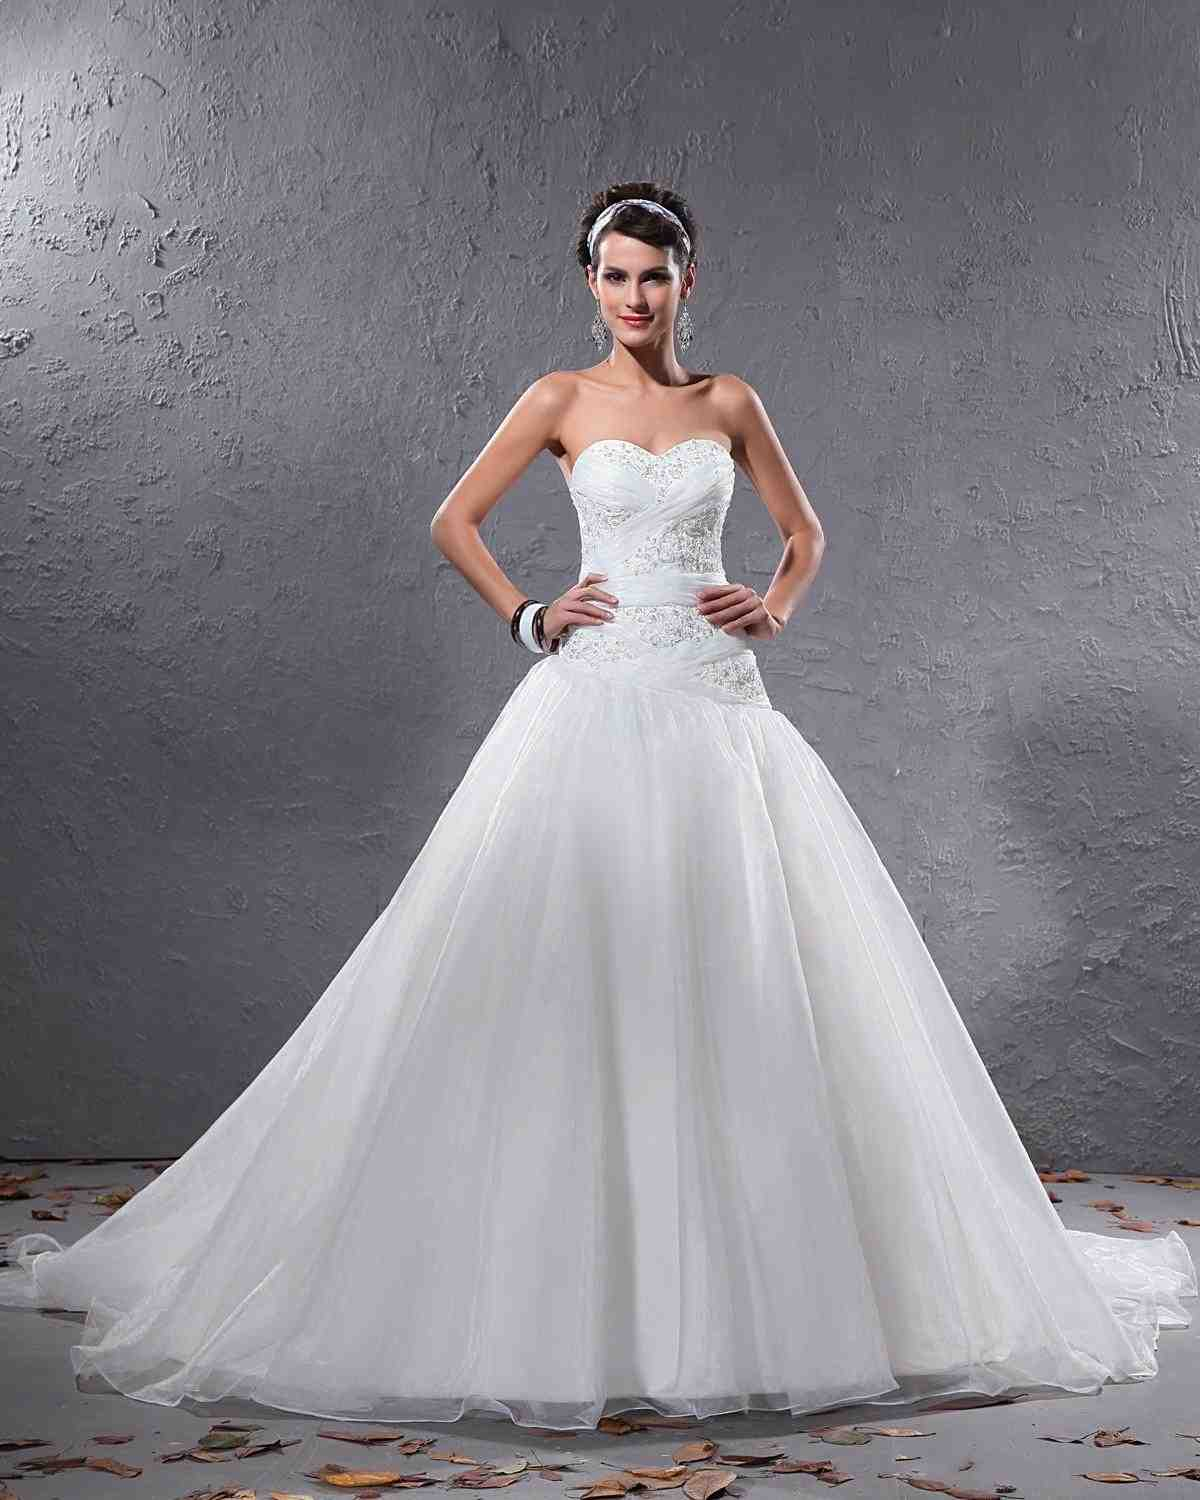 White Wedding Dresses: The Tradition And Elegance